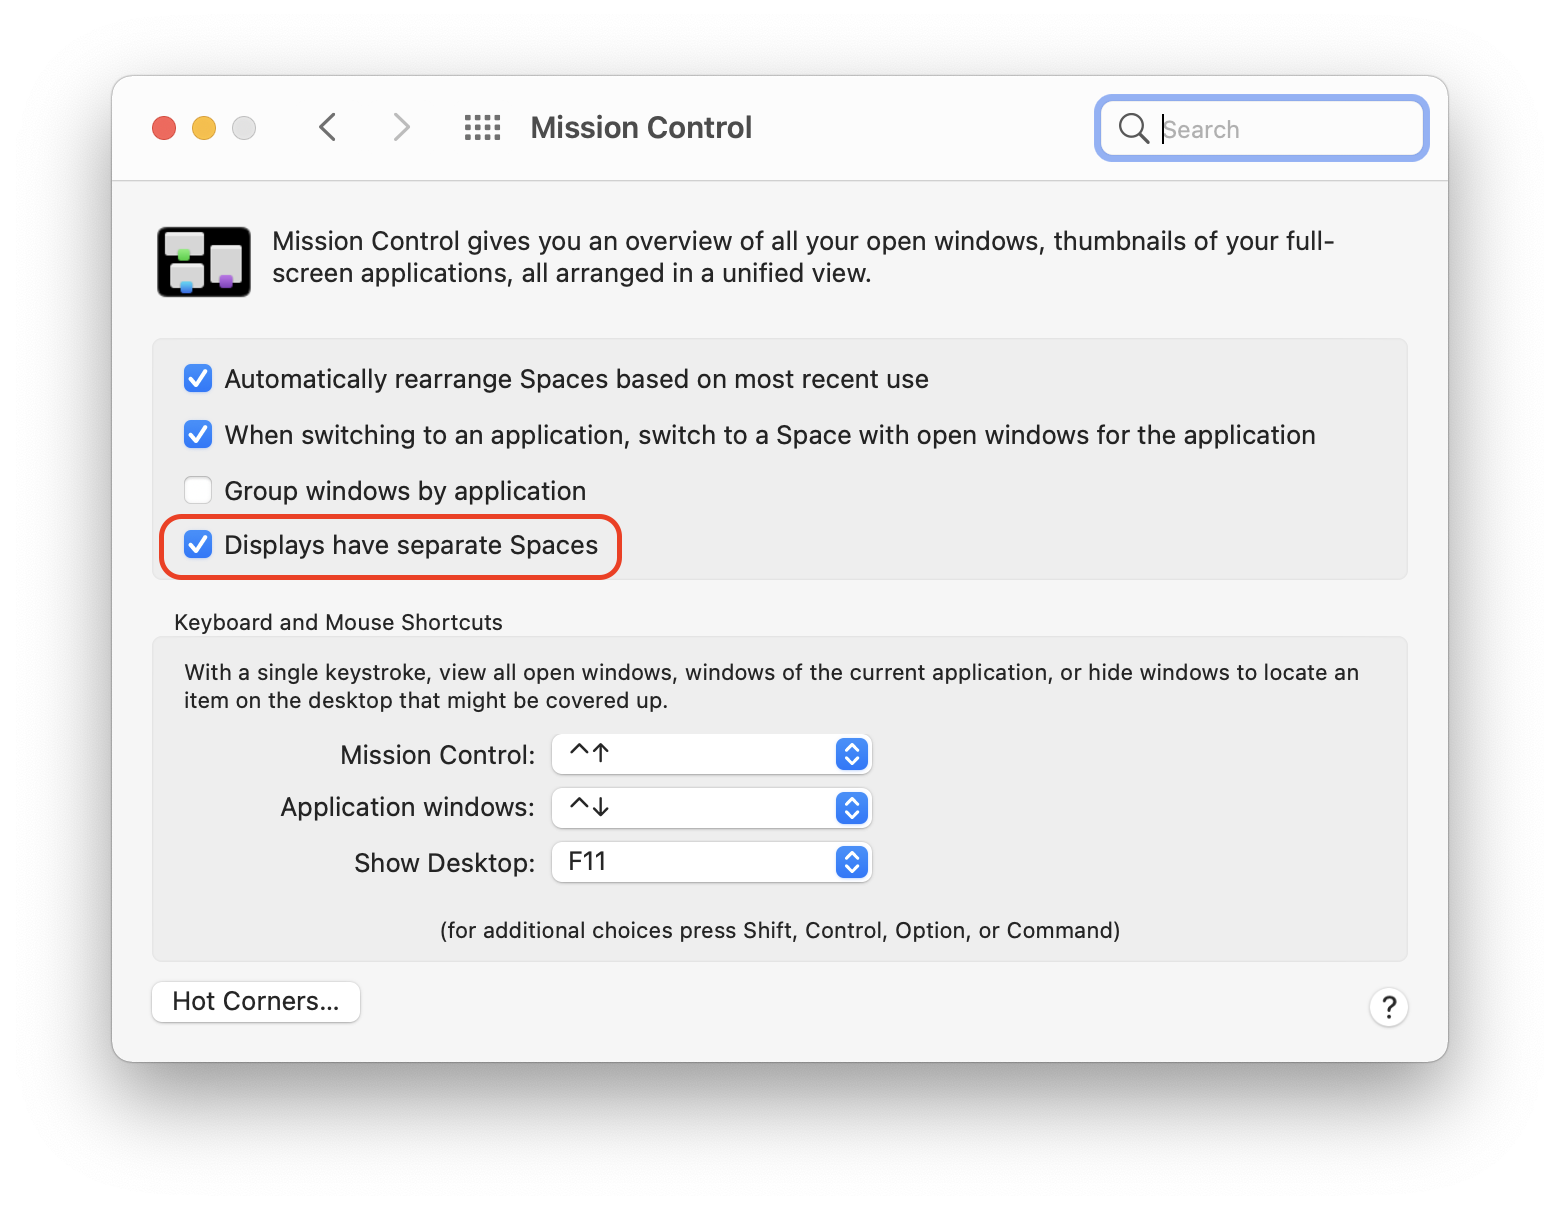 Enable Displays have Separate Spaces option to enable Split Screen on macOS